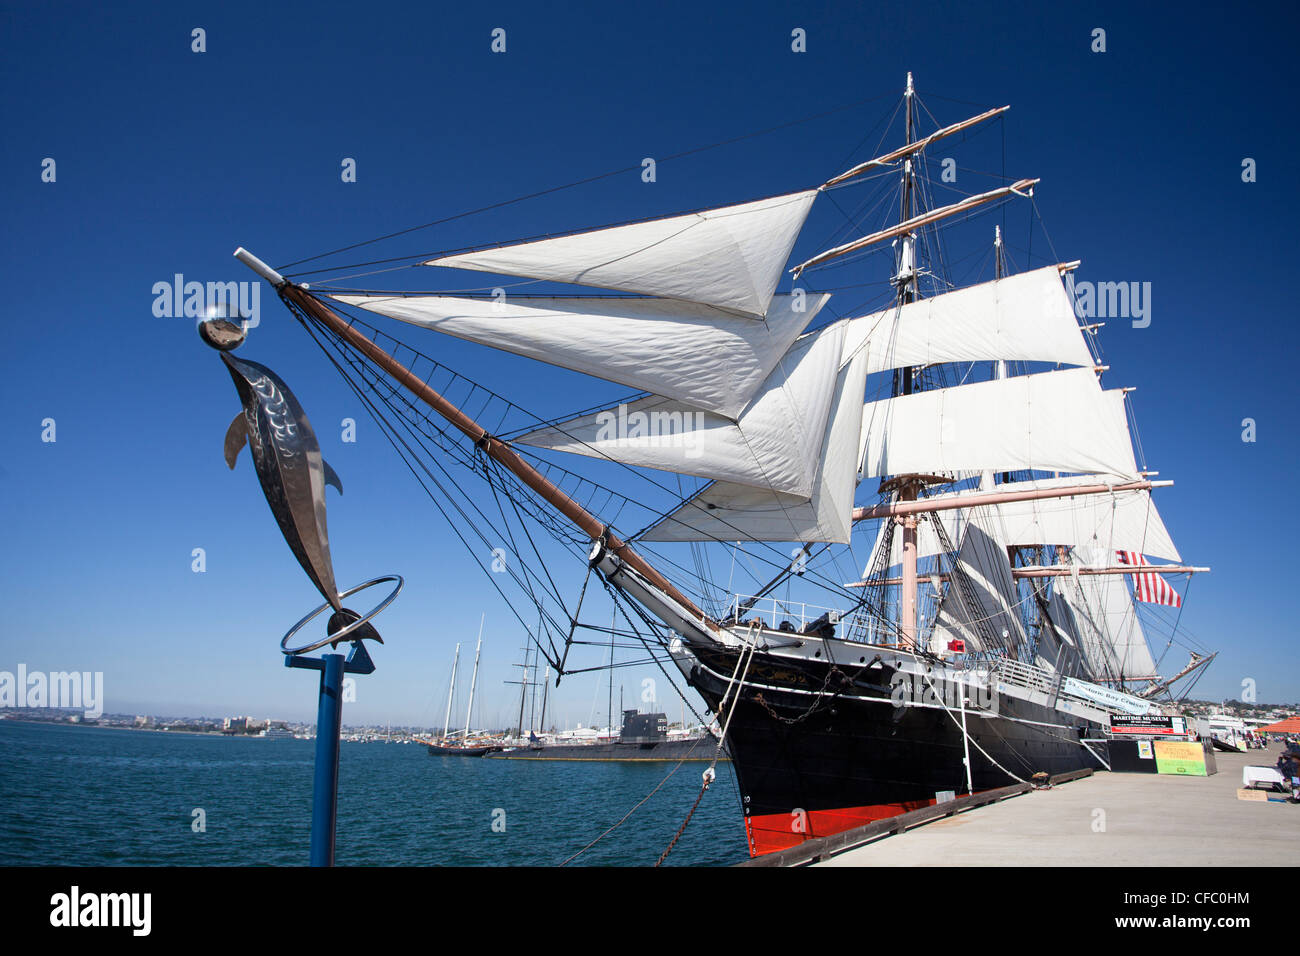 USA, United States, America, California, San Diego, City, Maritime Museum, sailing boat, The Star of India., - Stock Image